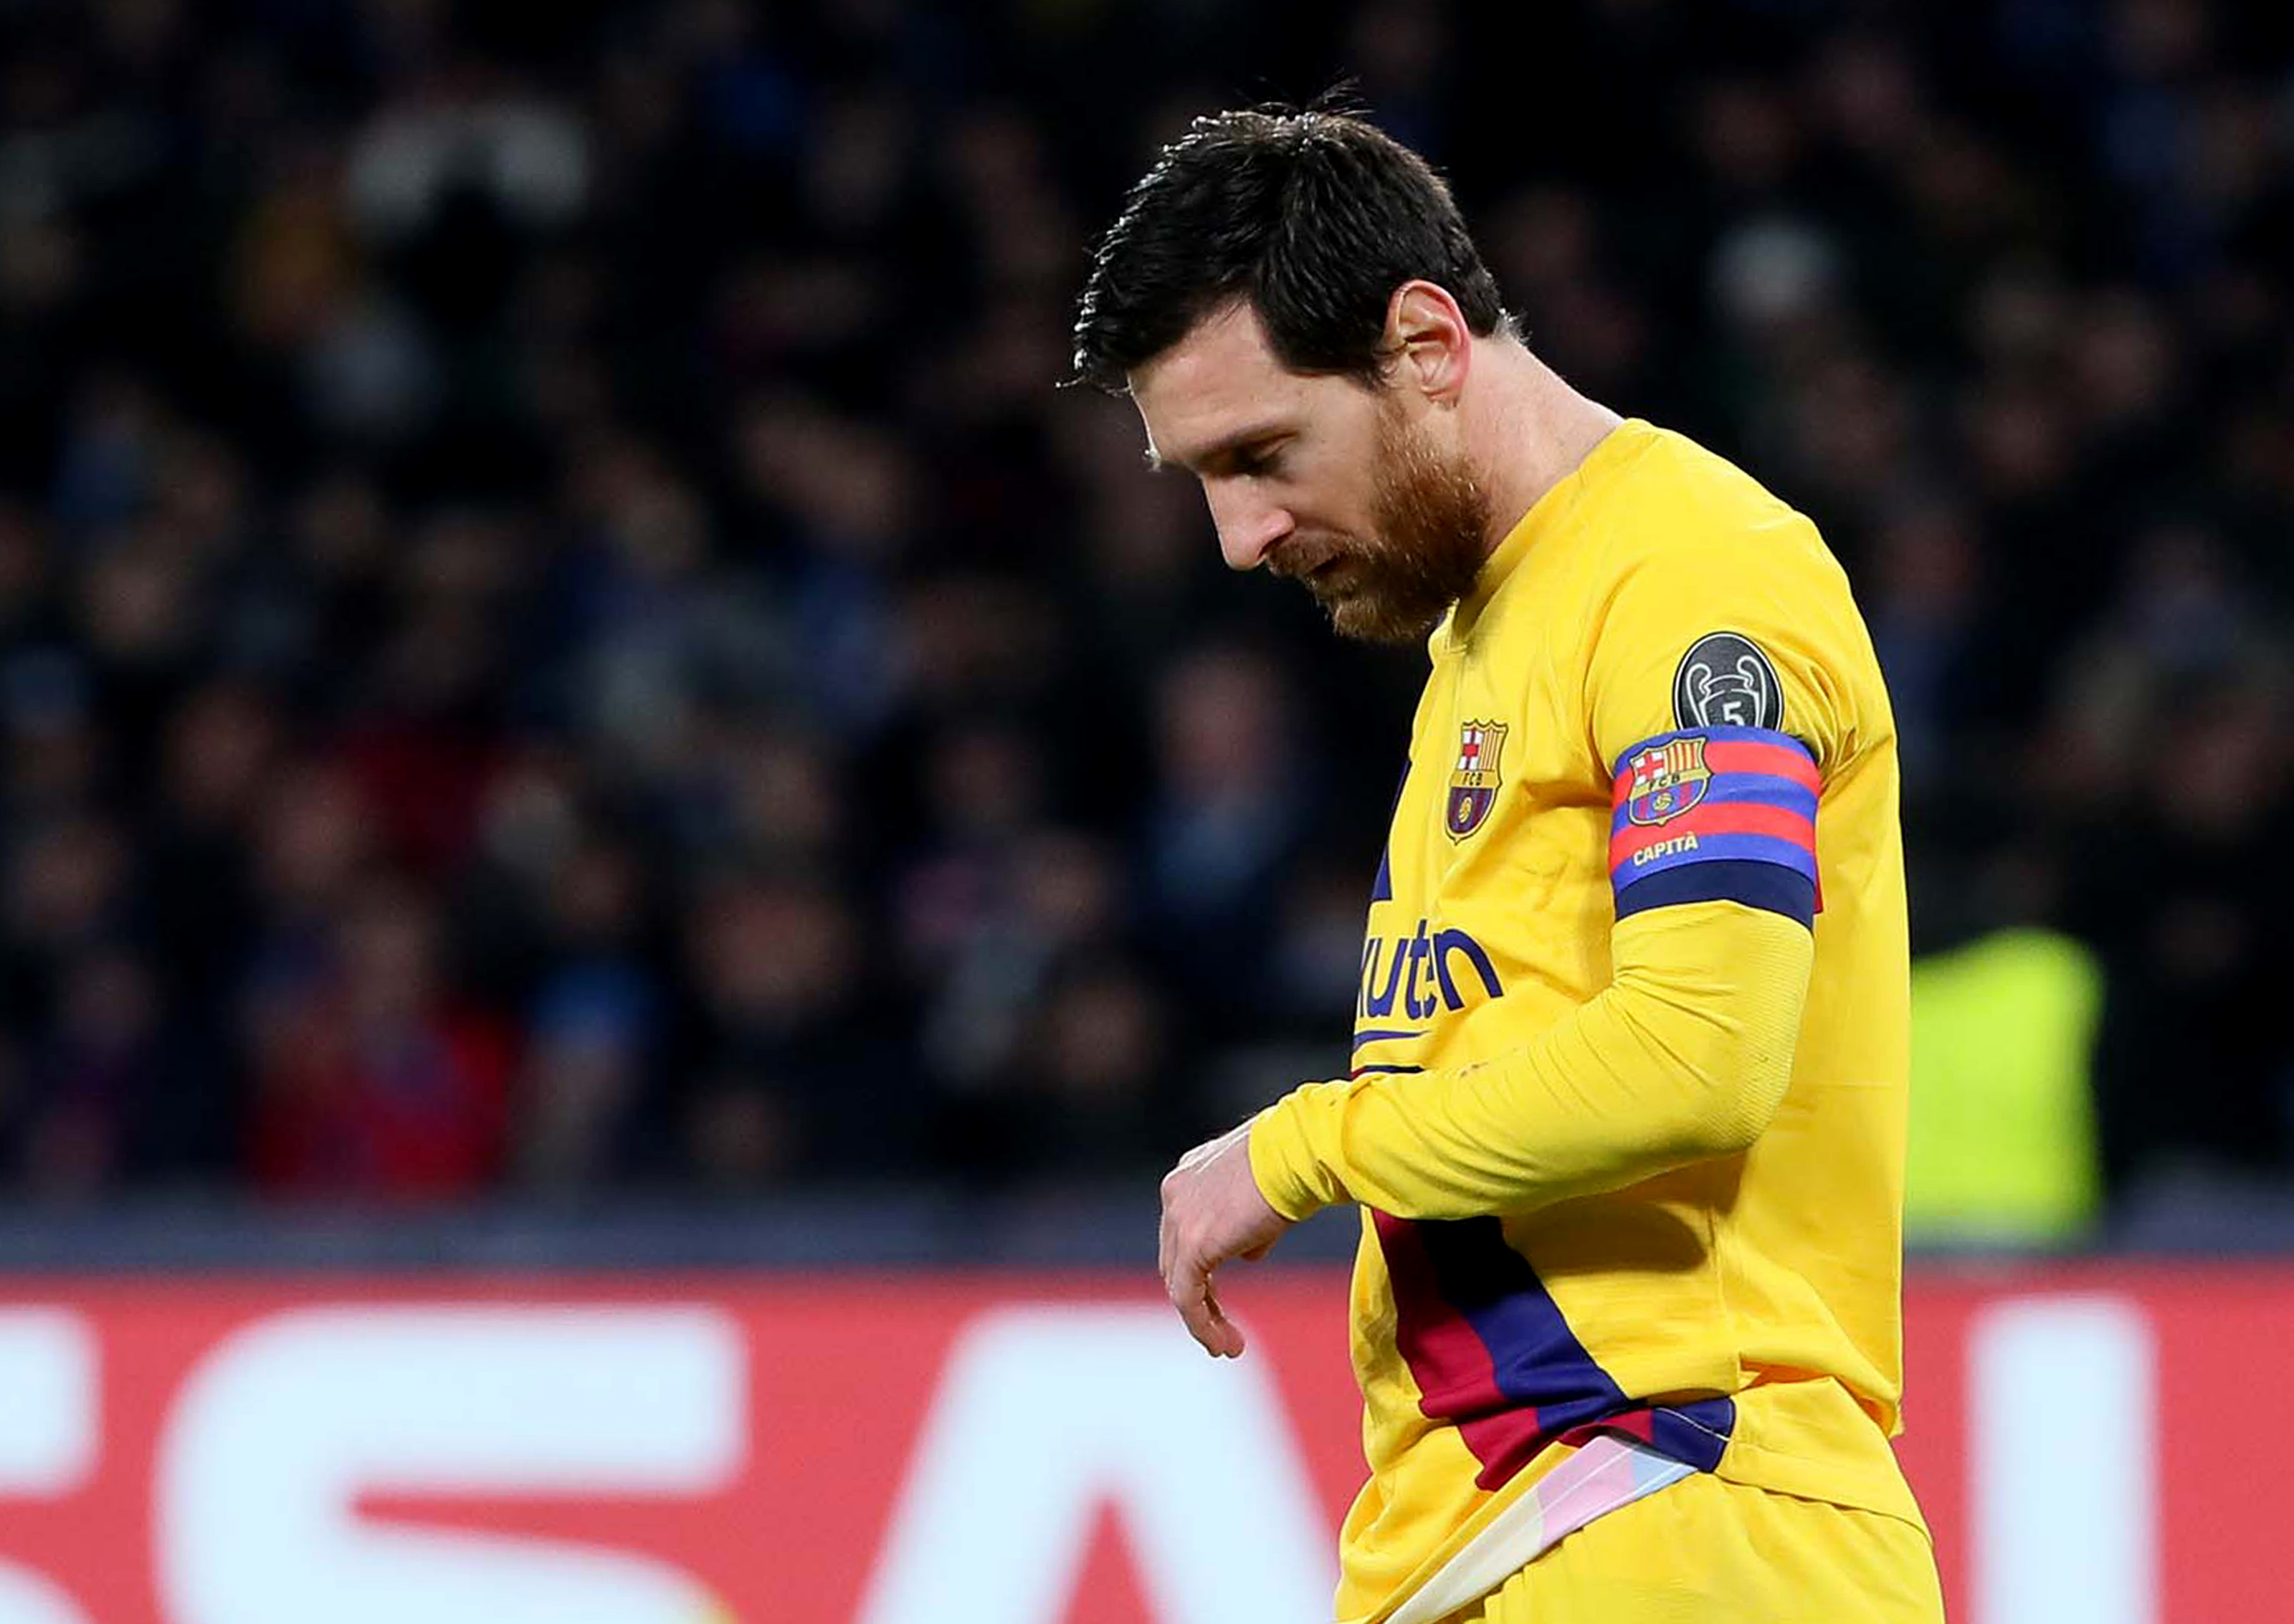 Lionel Messi issues Barcelona a new ultimatum on his future